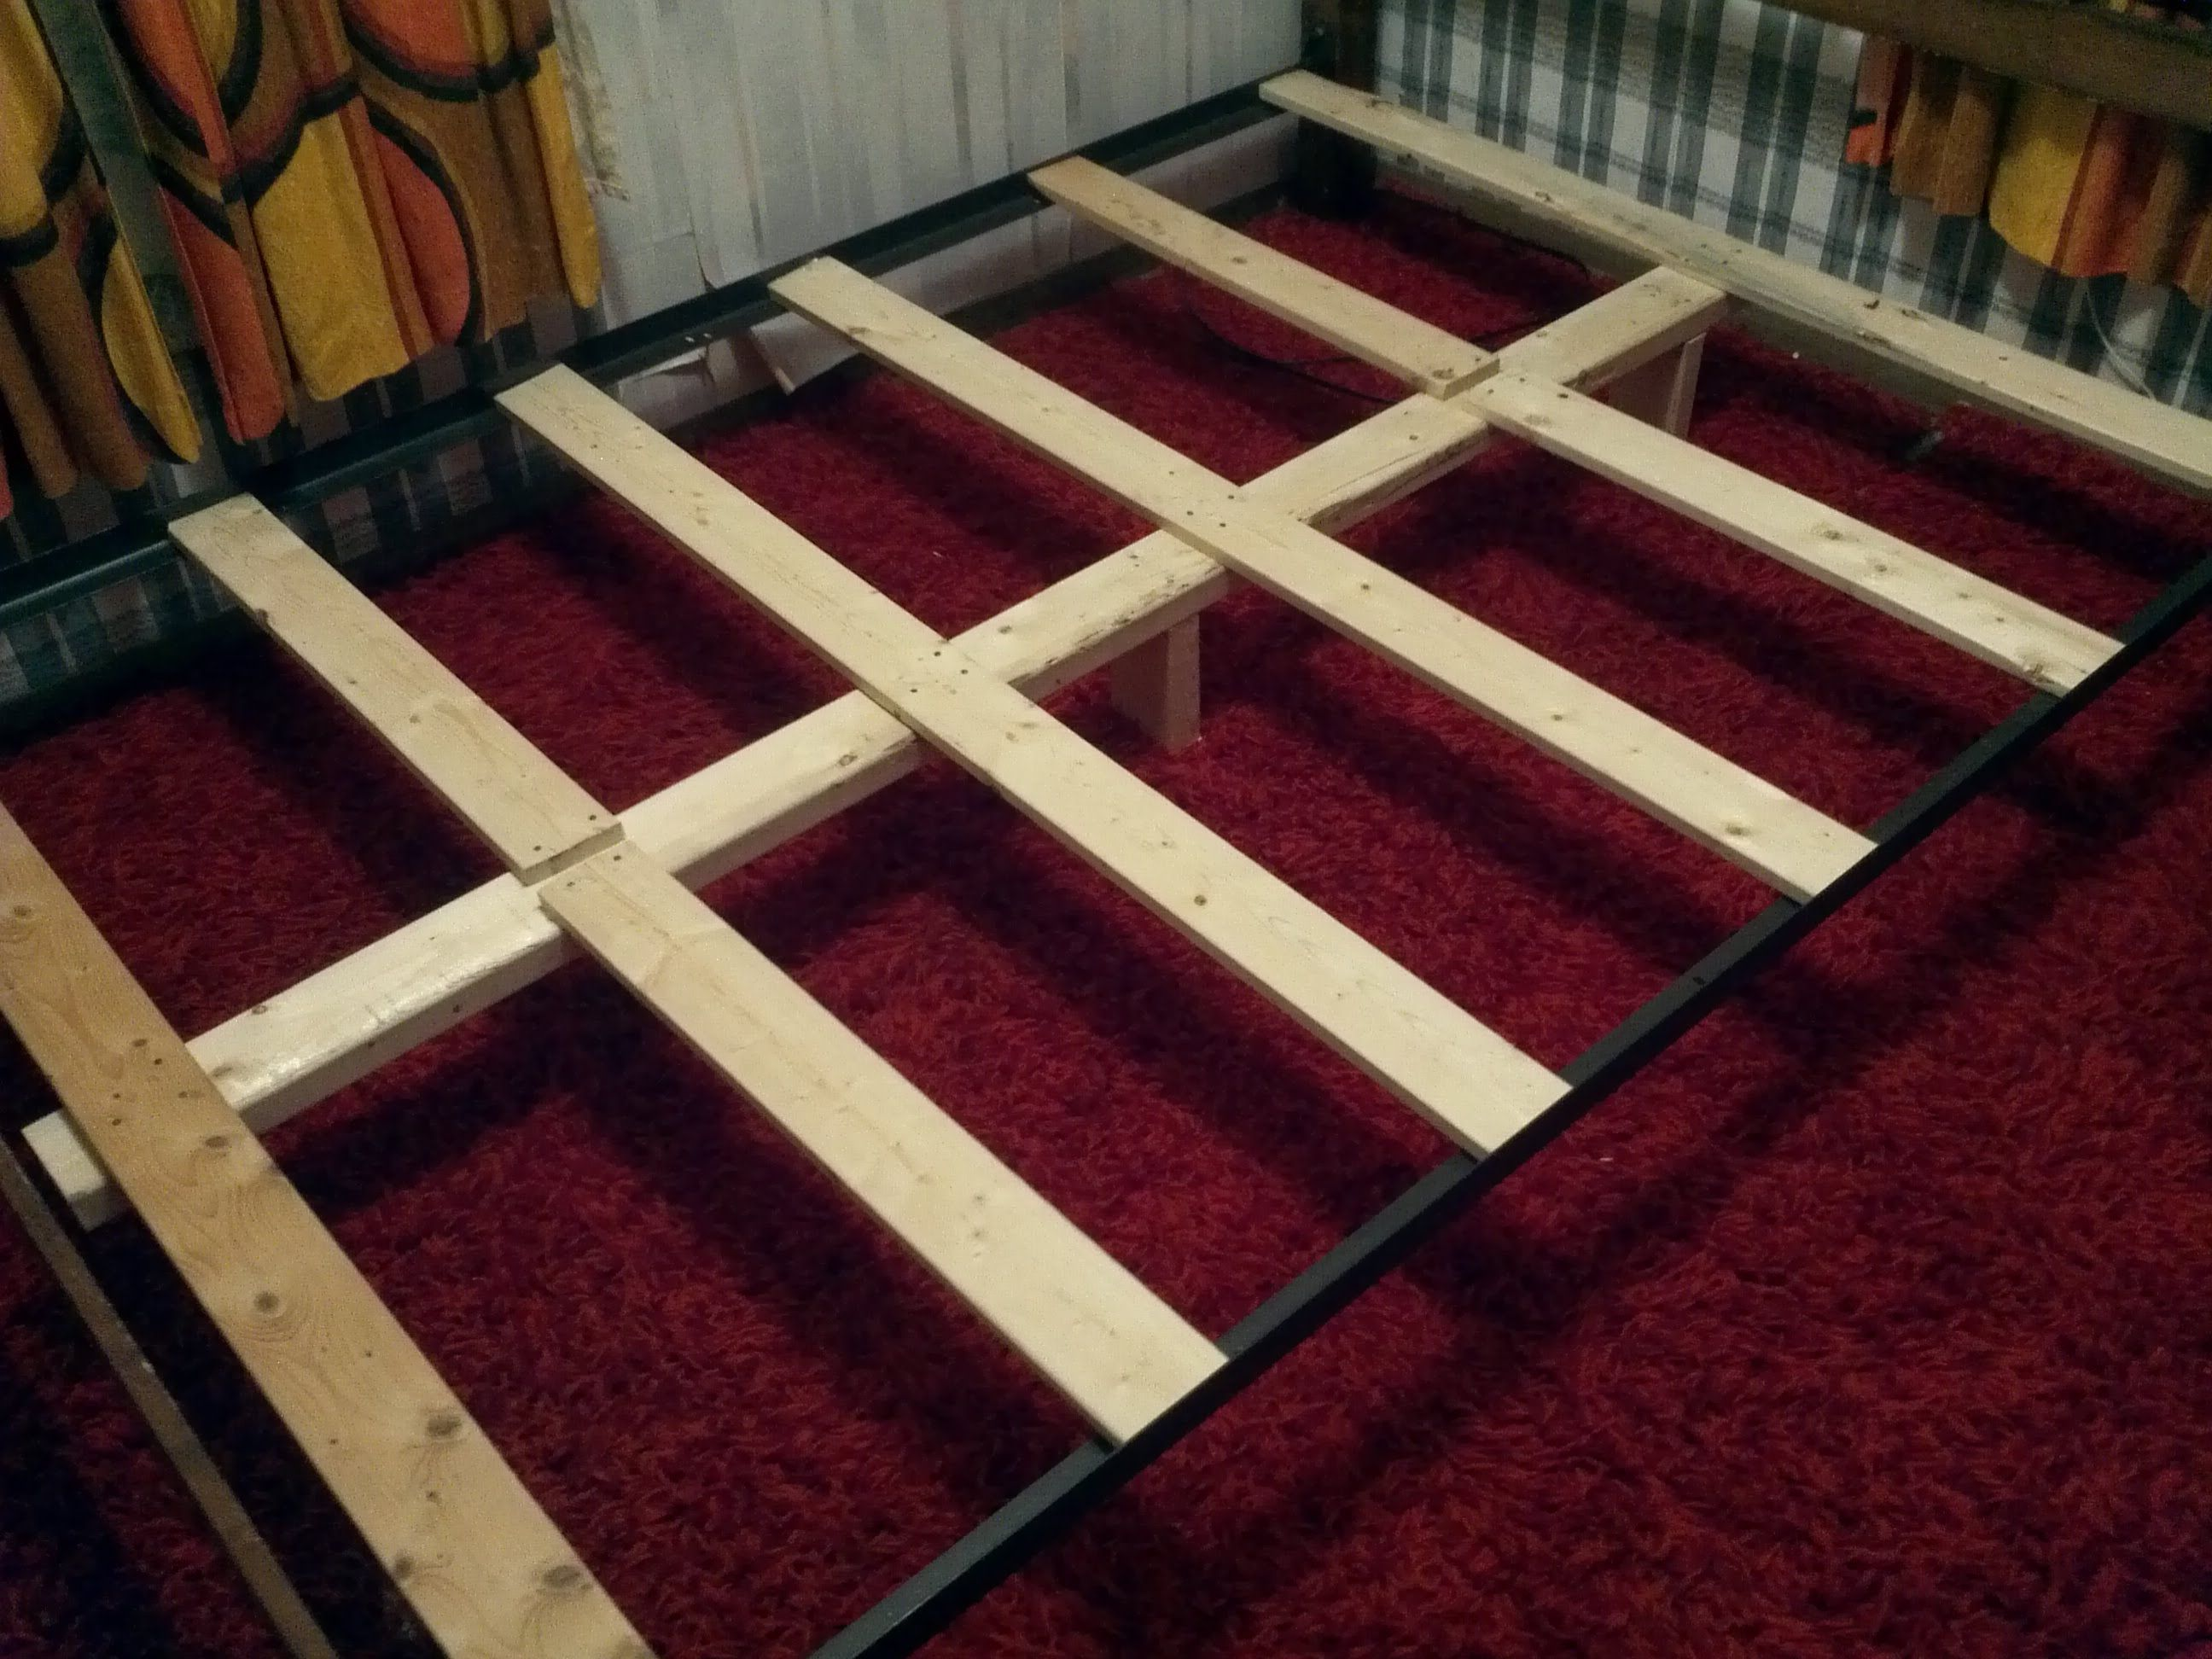 How To Support a Mattress Without a Box Spring Build a